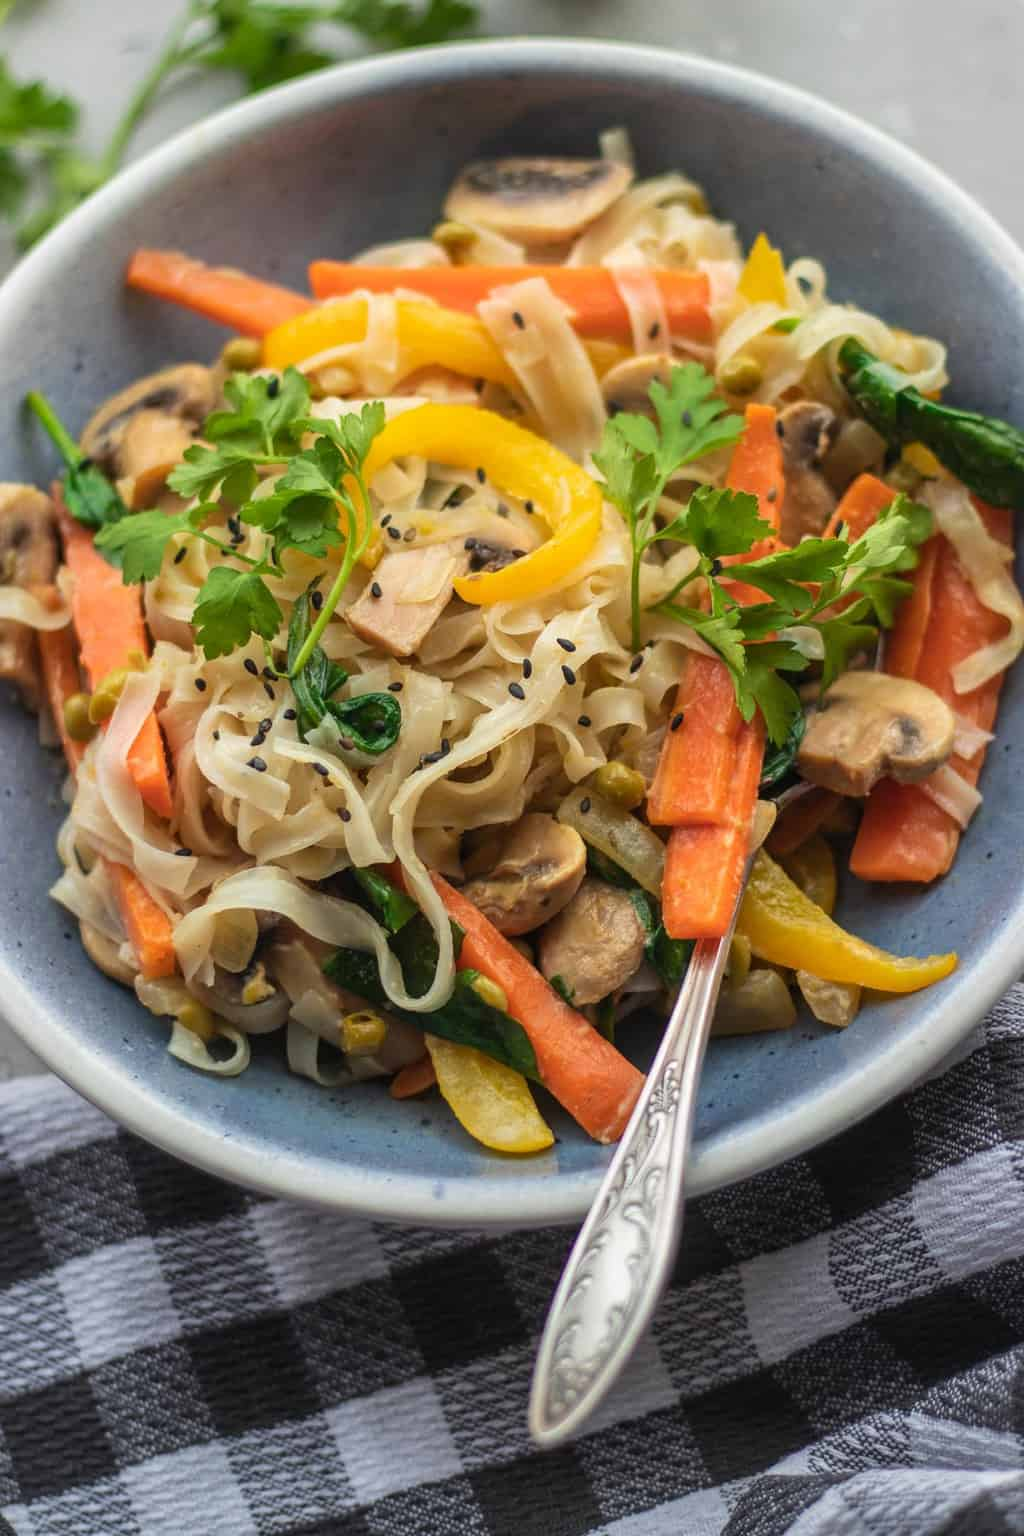 Vegan mushroom and vegetable stir-fry with peppers and carrots